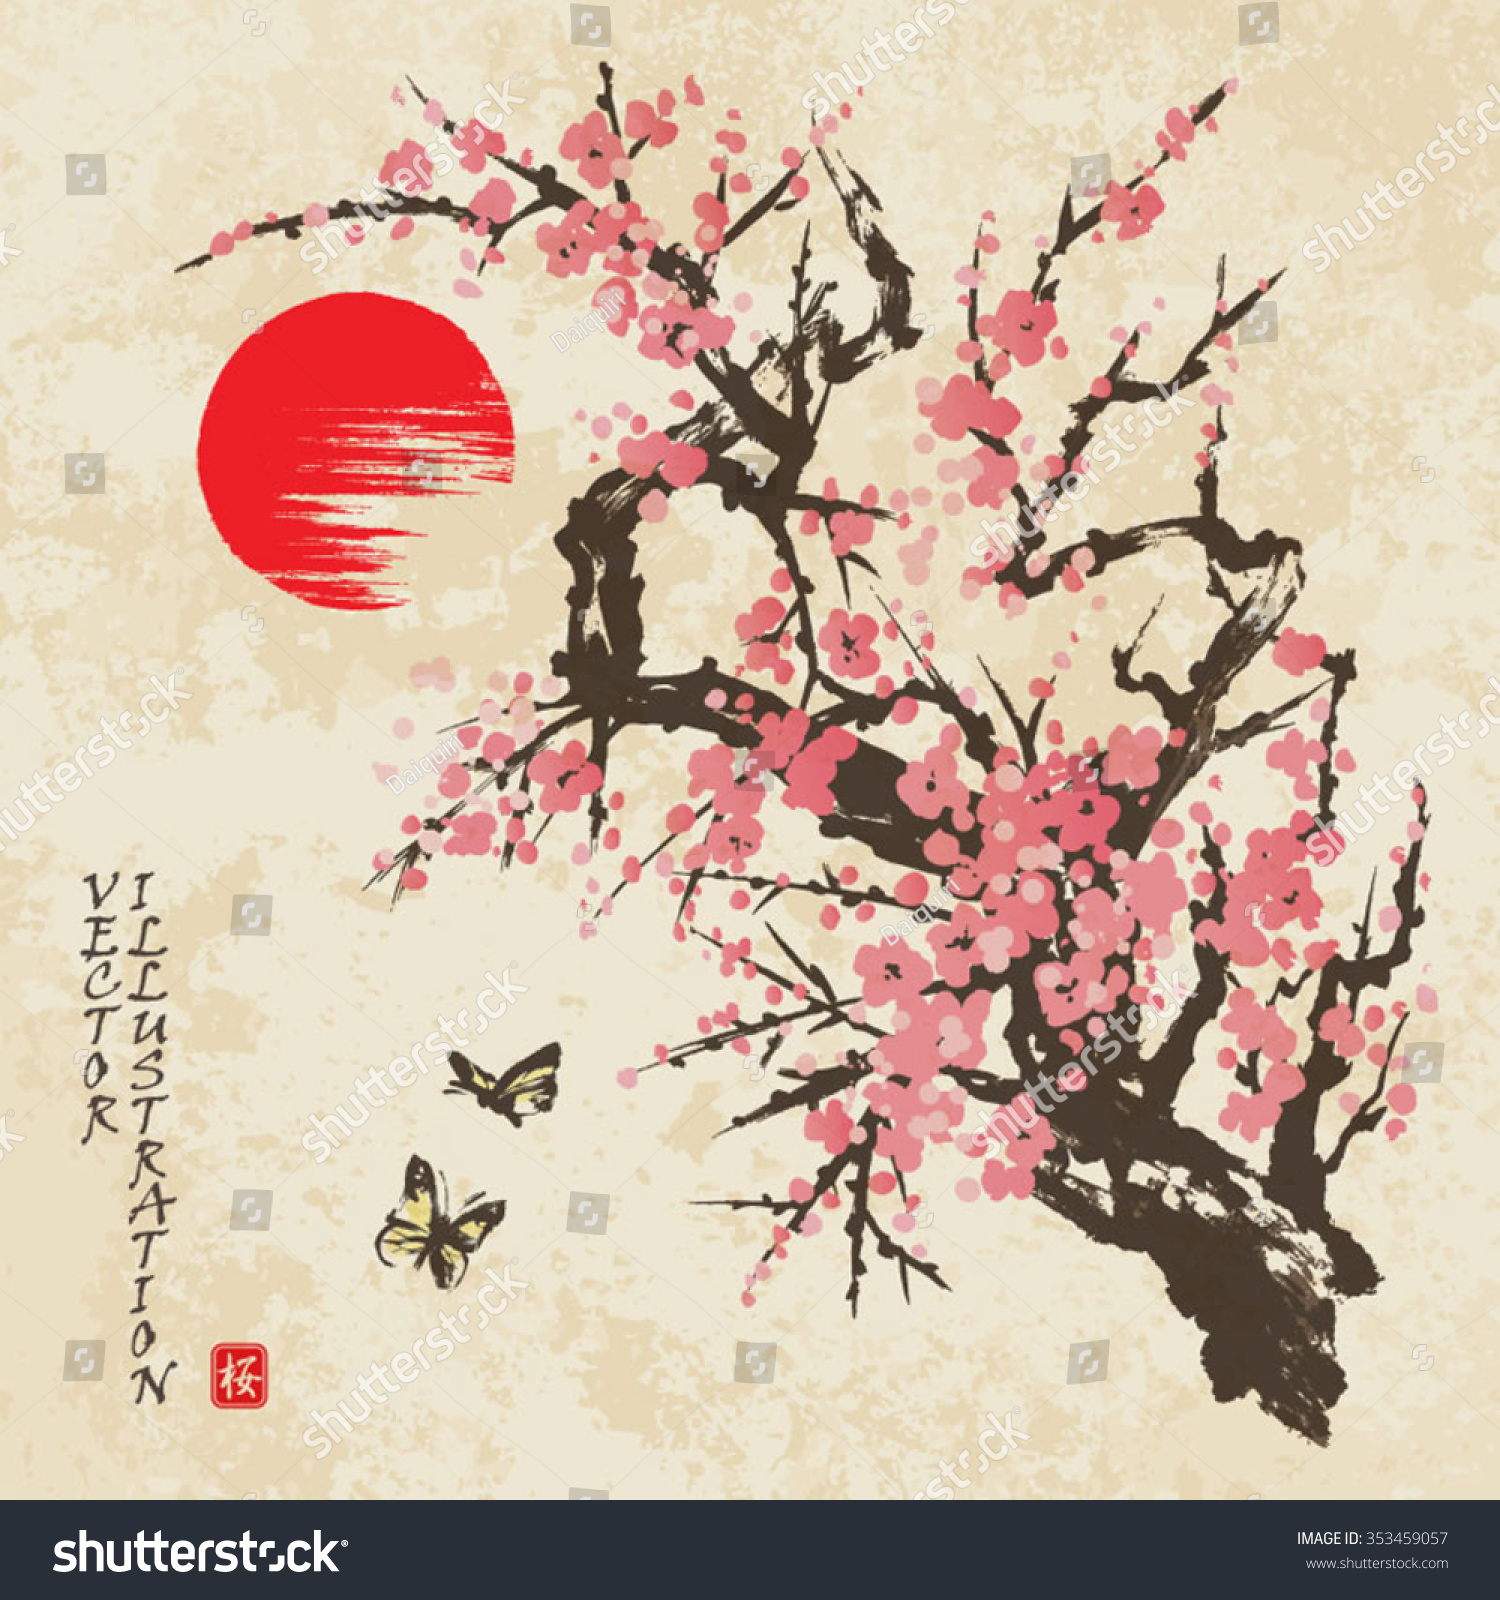 Loving asian style cherry blossom picuture one hell workout